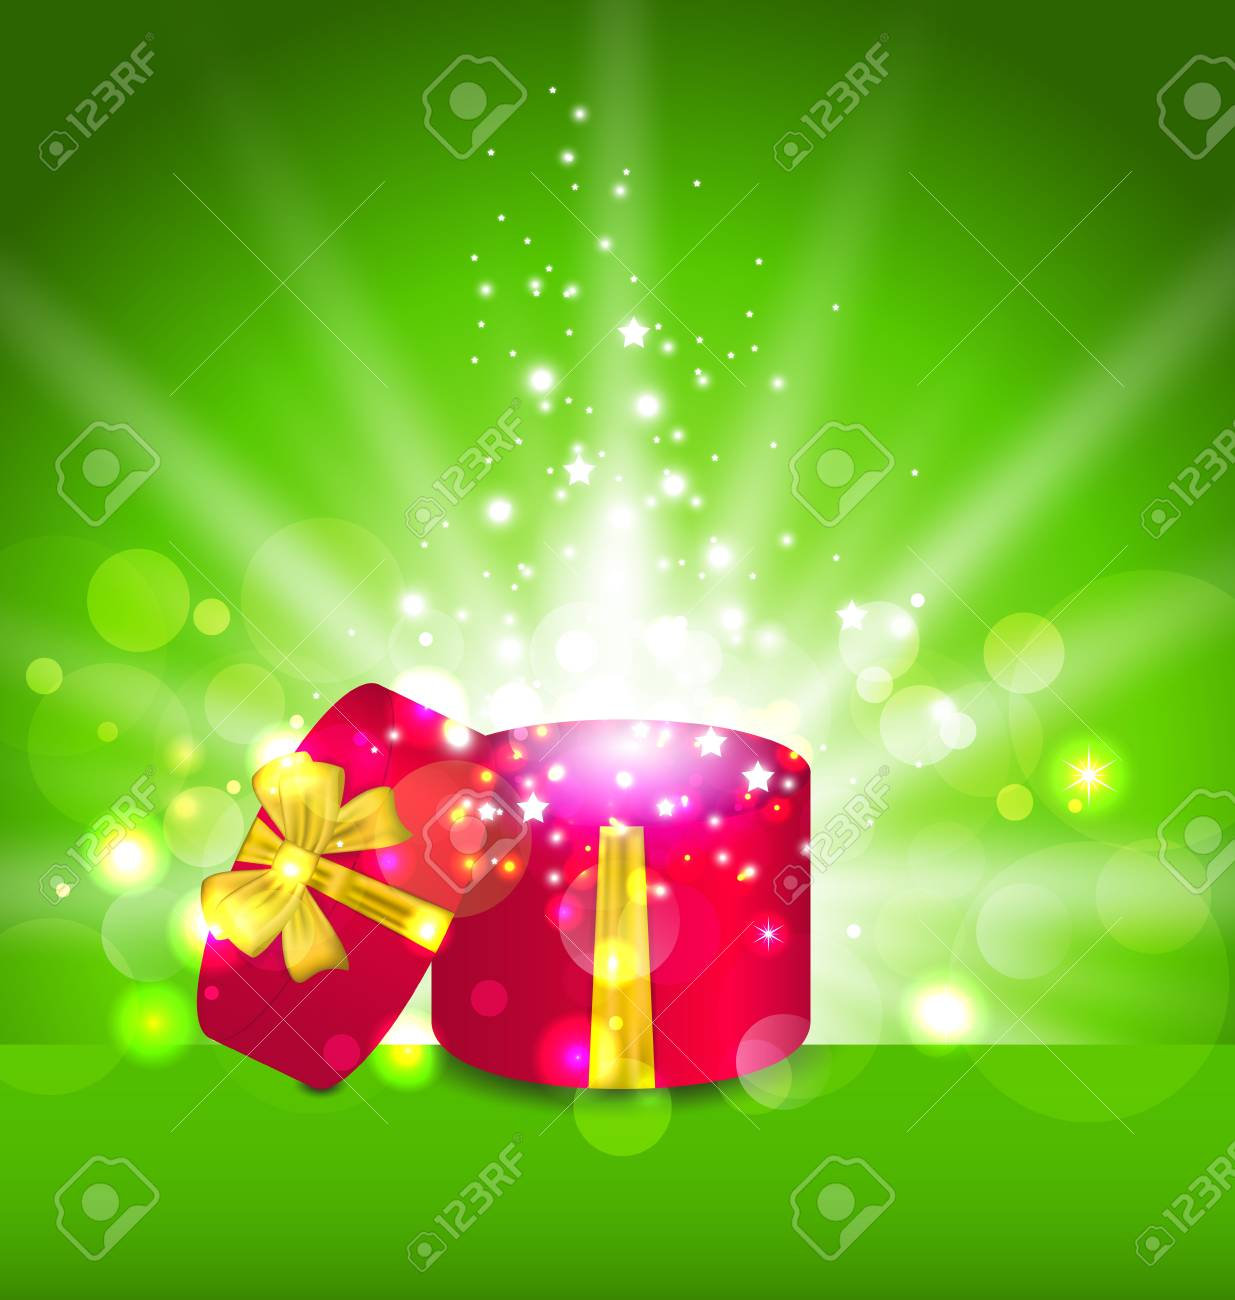 Illustration Christmas background with open round gift box - vector Stock Photo - 22096293